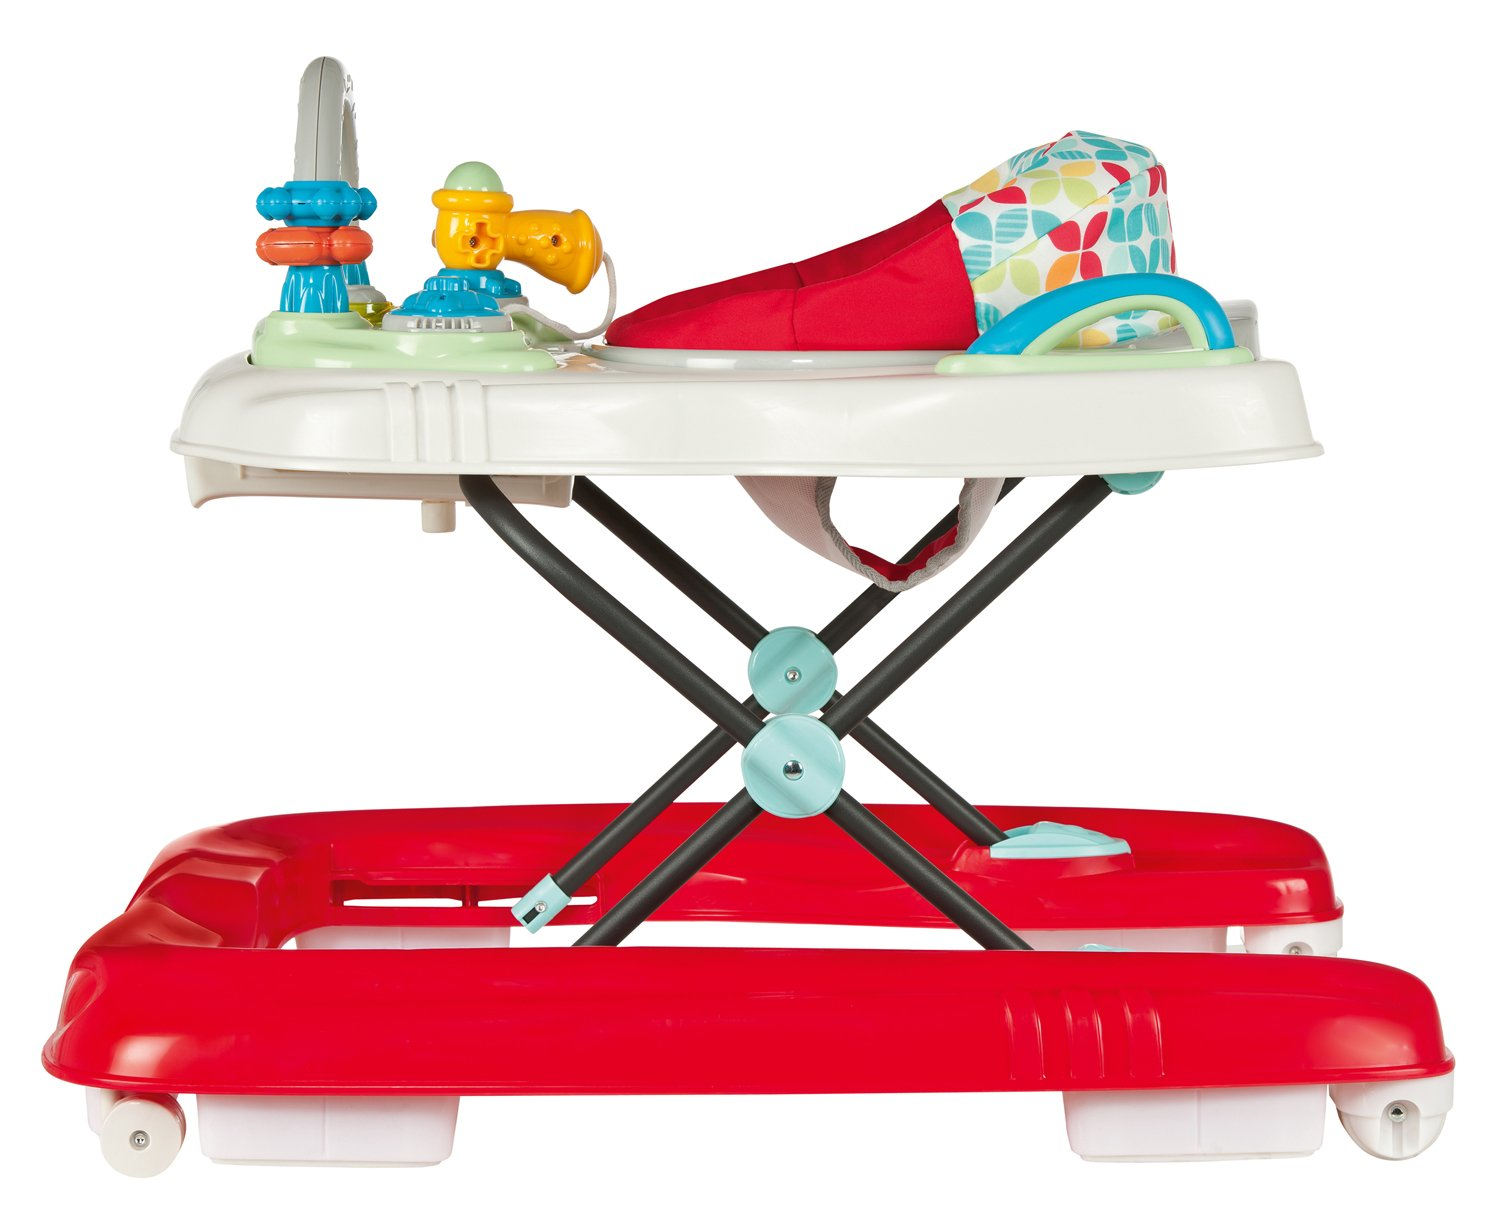 Safety 1st 27566430 - Puericultura hogar Happy step playtime ...